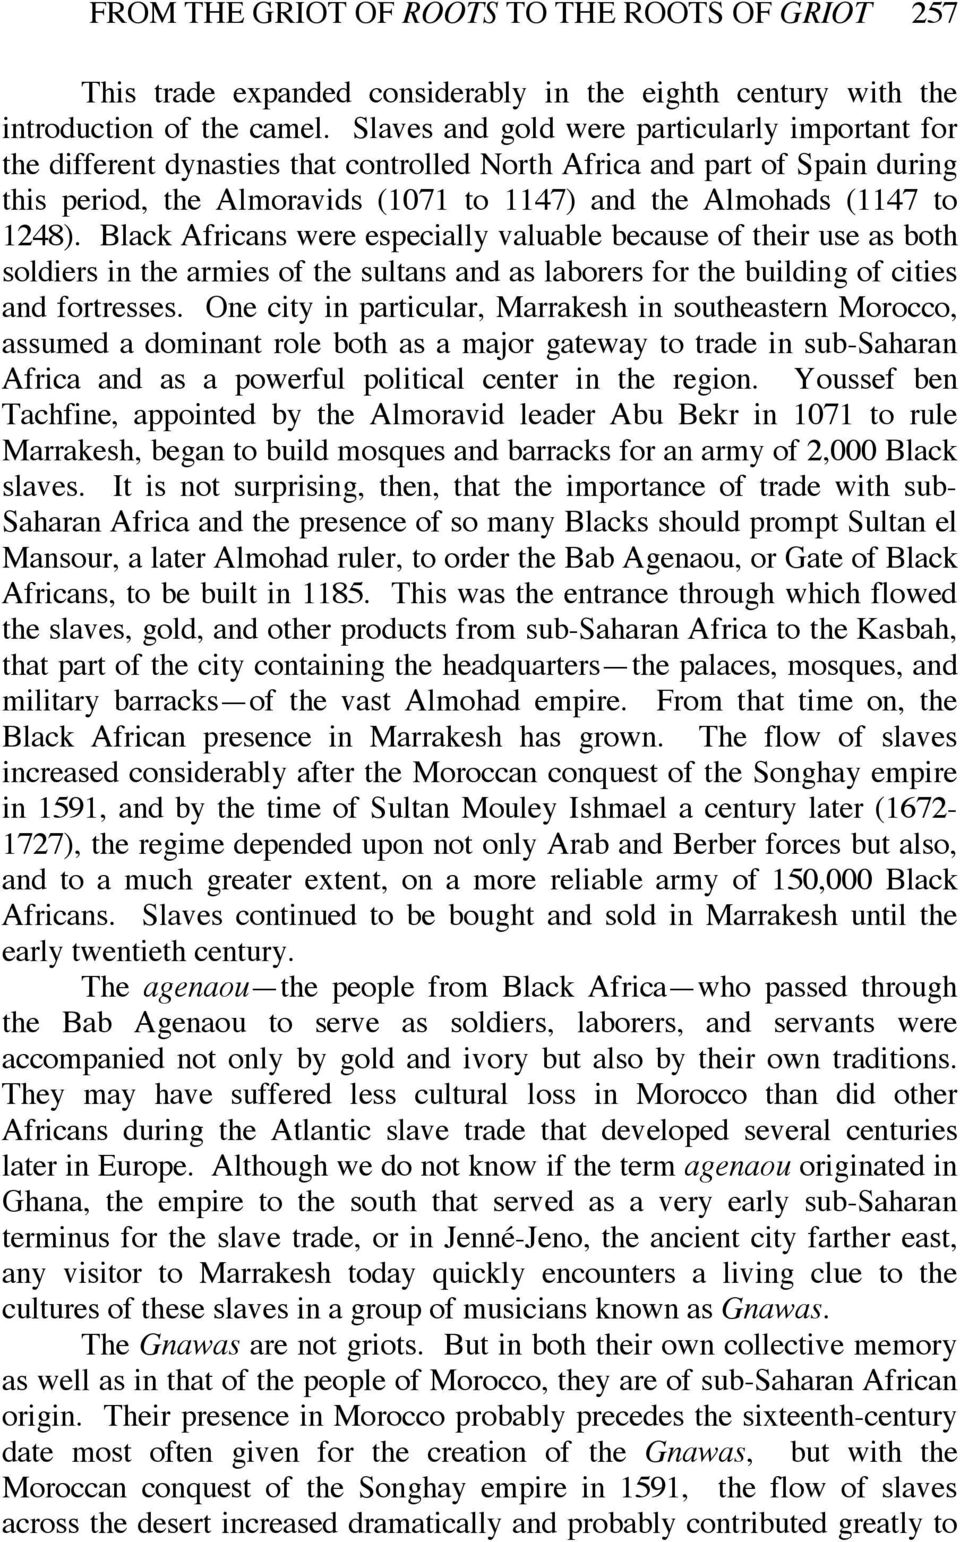 1248). Black Africans were especially valuable because of their use as both soldiers in the armies of the sultans and as laborers for the building of cities and fortresses.